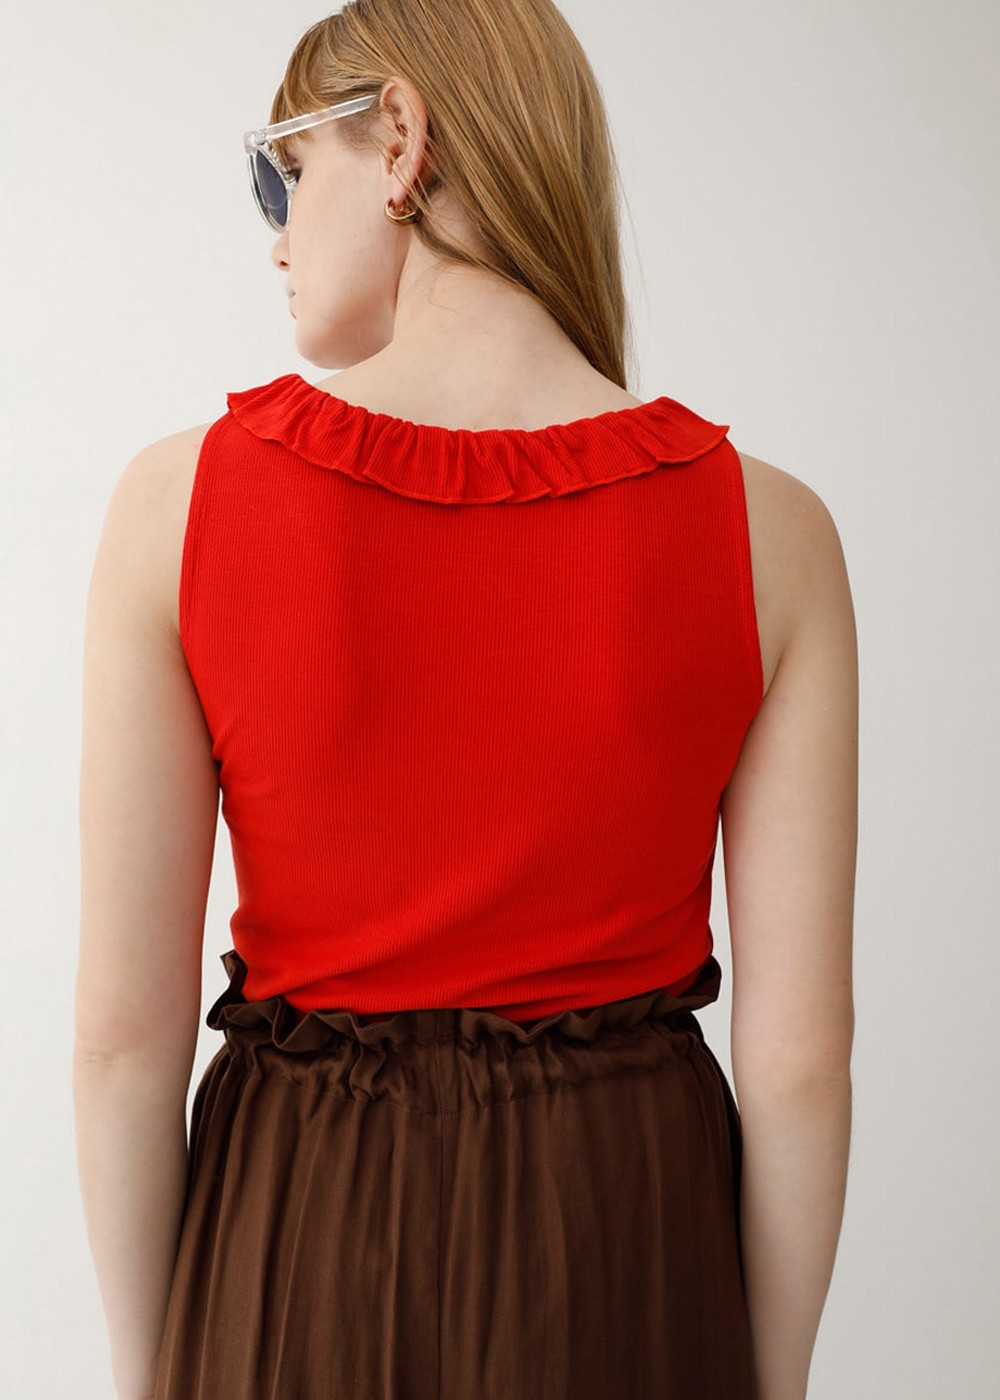 【最大70%OFF】RUFFLE RIB TANK|L/RED|タンクトップ|MOUSSY